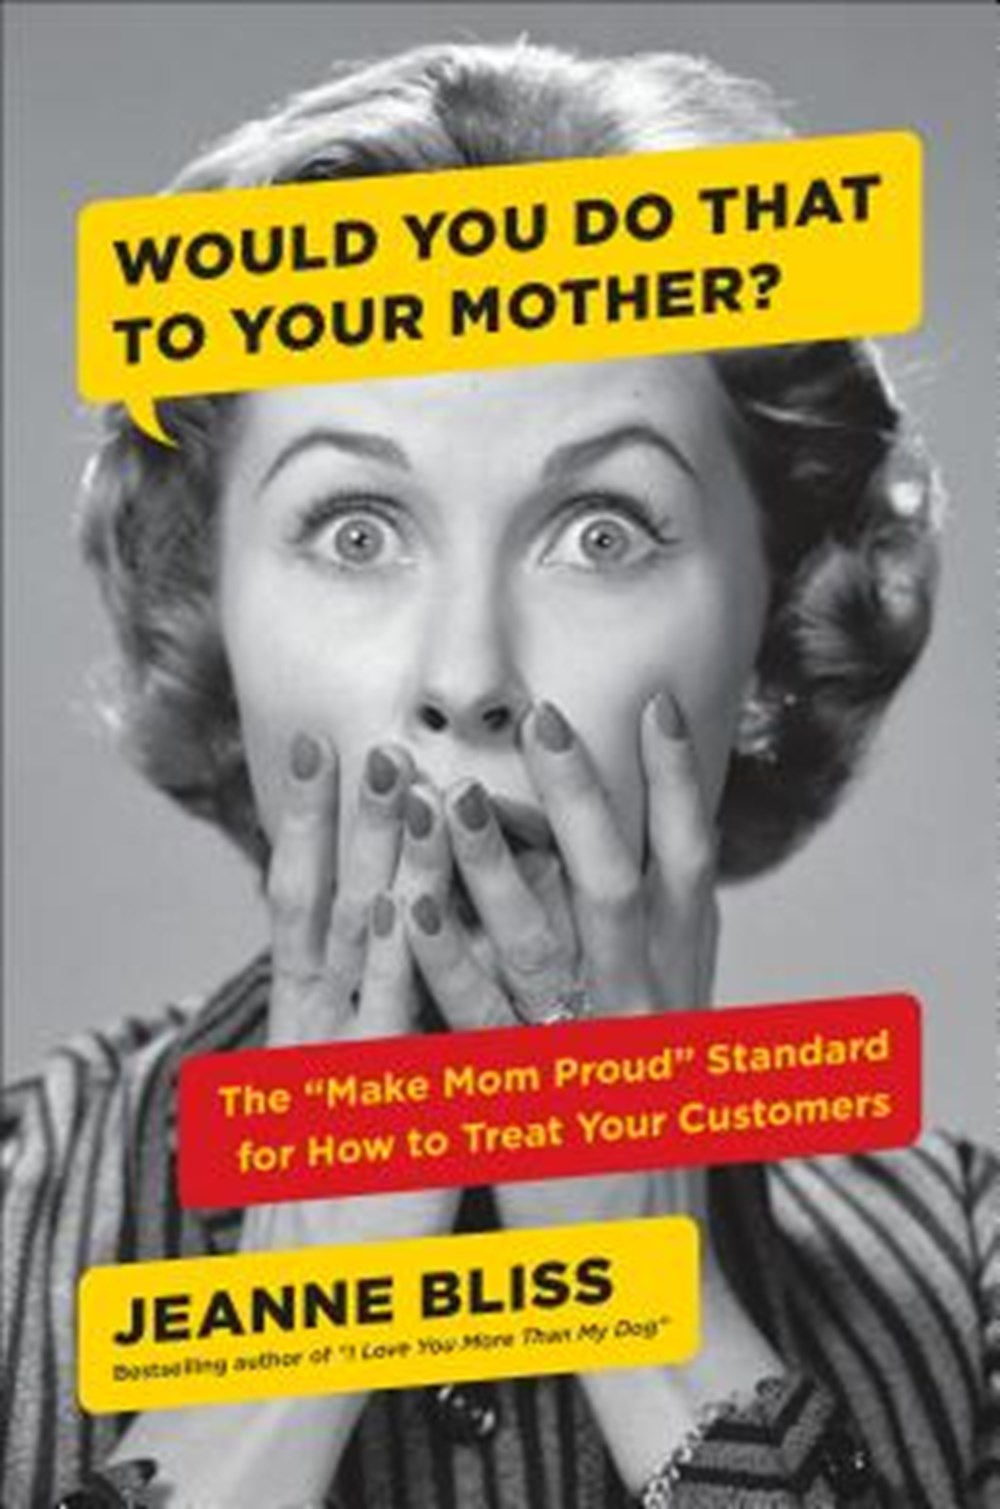 Would You Do That to Your Mother? The Make Mom Proud Standard for How to Treat Your Customers